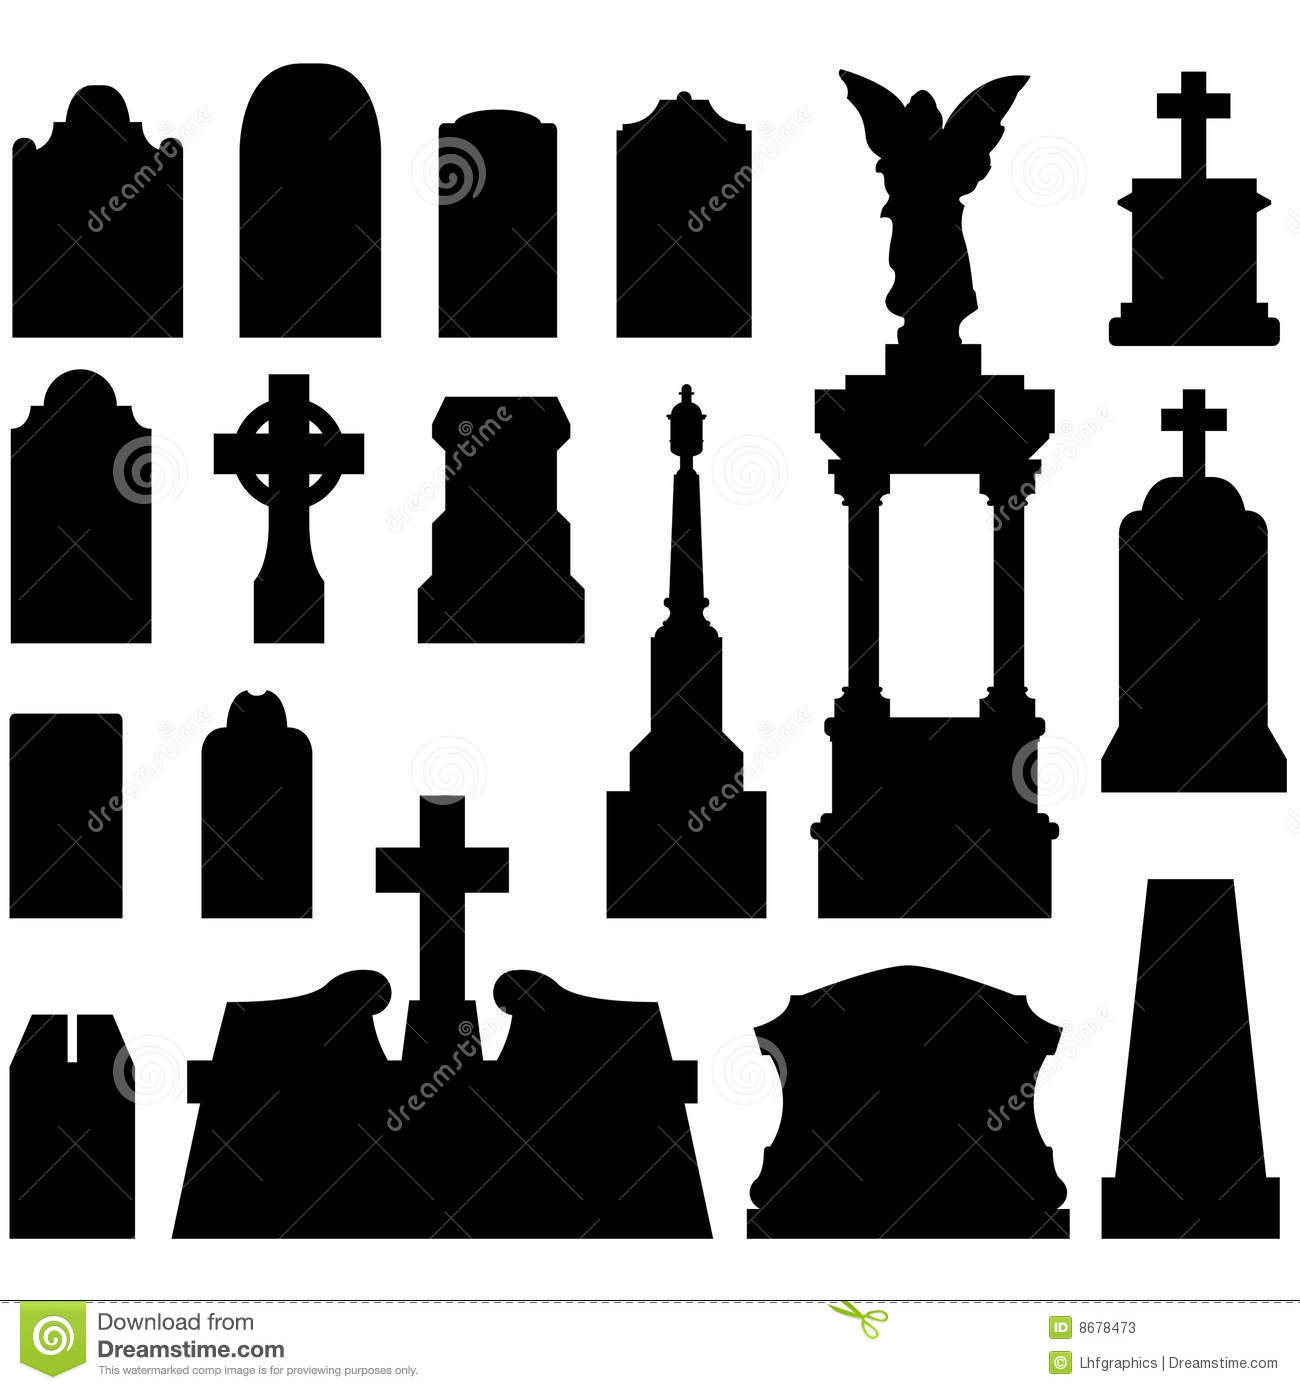 House Design Layout Templates Headstones And Gravestones In Vector Stock Photos Image